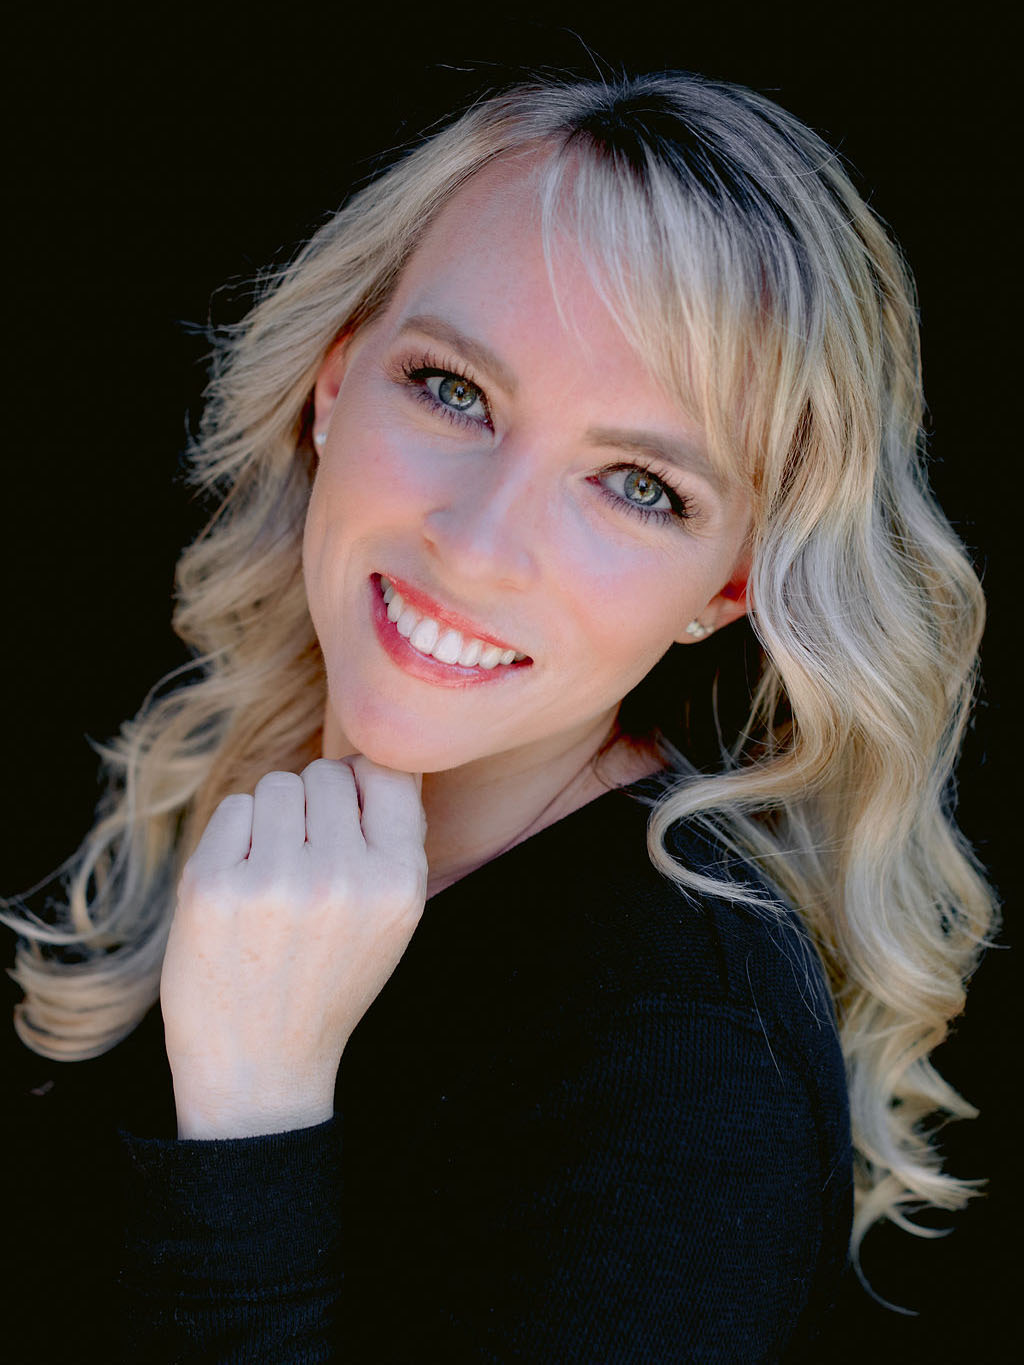 Cosmetic dentistry is a specialty that can give your smile new life.